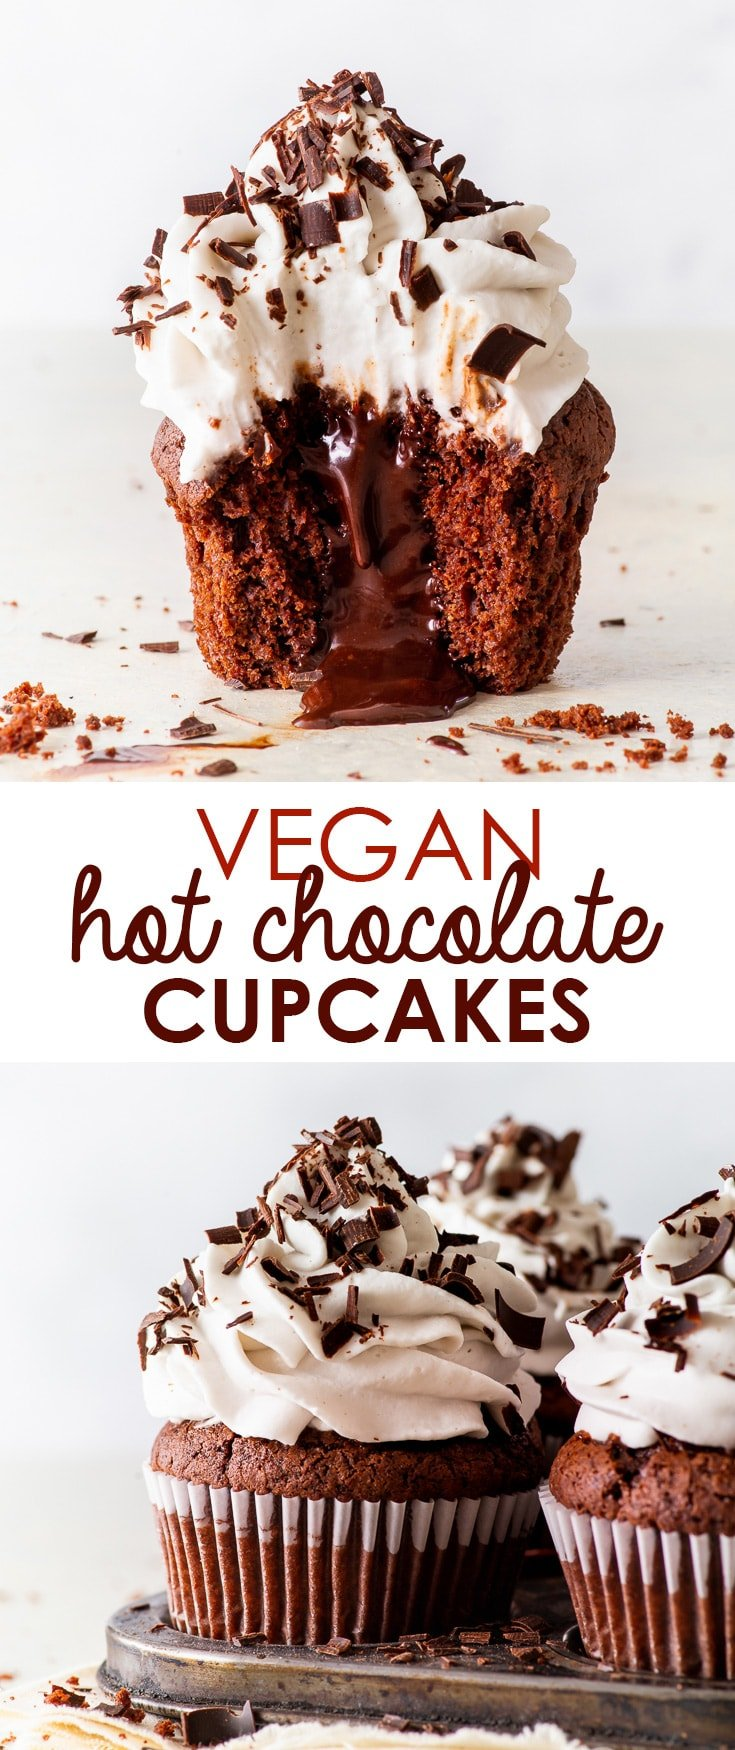 Vegan Hot Chocolate Cupcakes [SPONSORED] - You will LOVE these vegan hot chocolate cupcakes, with their luxurious chocolate fudge sauce centre and fluffy swirl of vegan whipped cream frosting. The cupcakes themselves are moist and chocolatey, and incredibly easy to make – without any egg replacements! Vegan cupcakes. Vegan desserts. Vegan recipes. Vegan chocolate sauce. Vegan frosting. Dairy free recipes. Dairy free cupcakes. #vegan #cupcakes